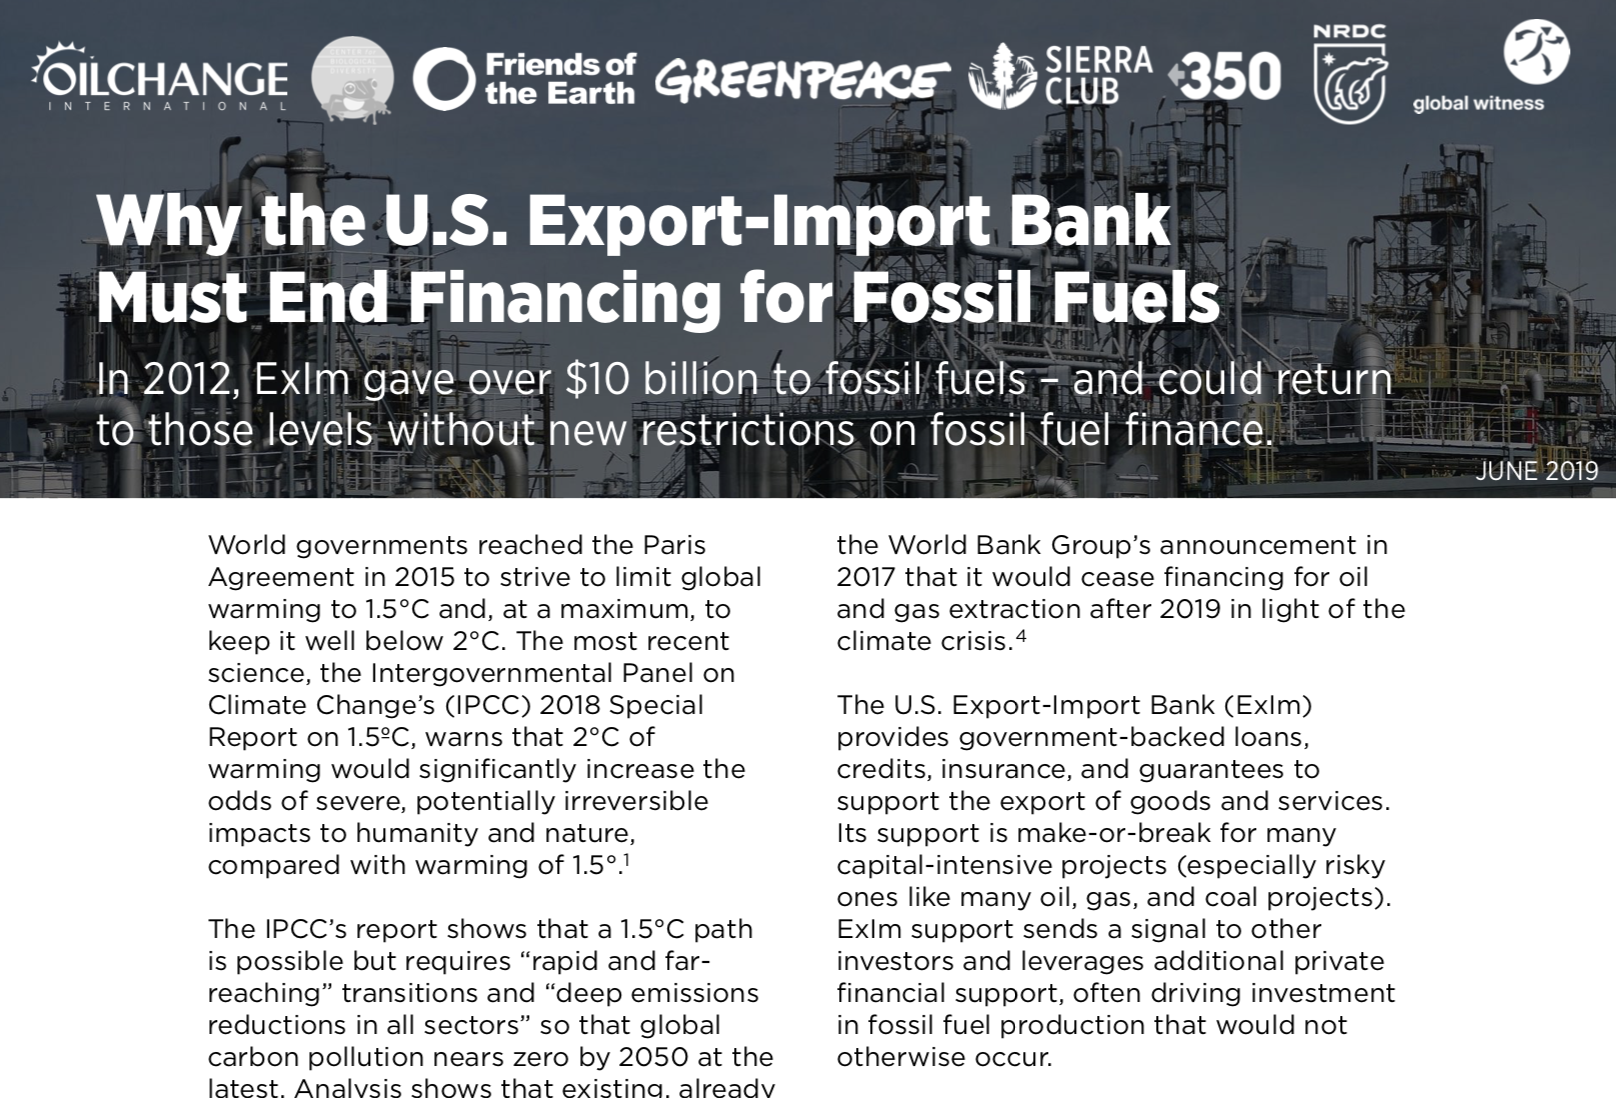 Briefing: Why the U.S. Export-Import Bank Must End Financing for Fossil Fuels